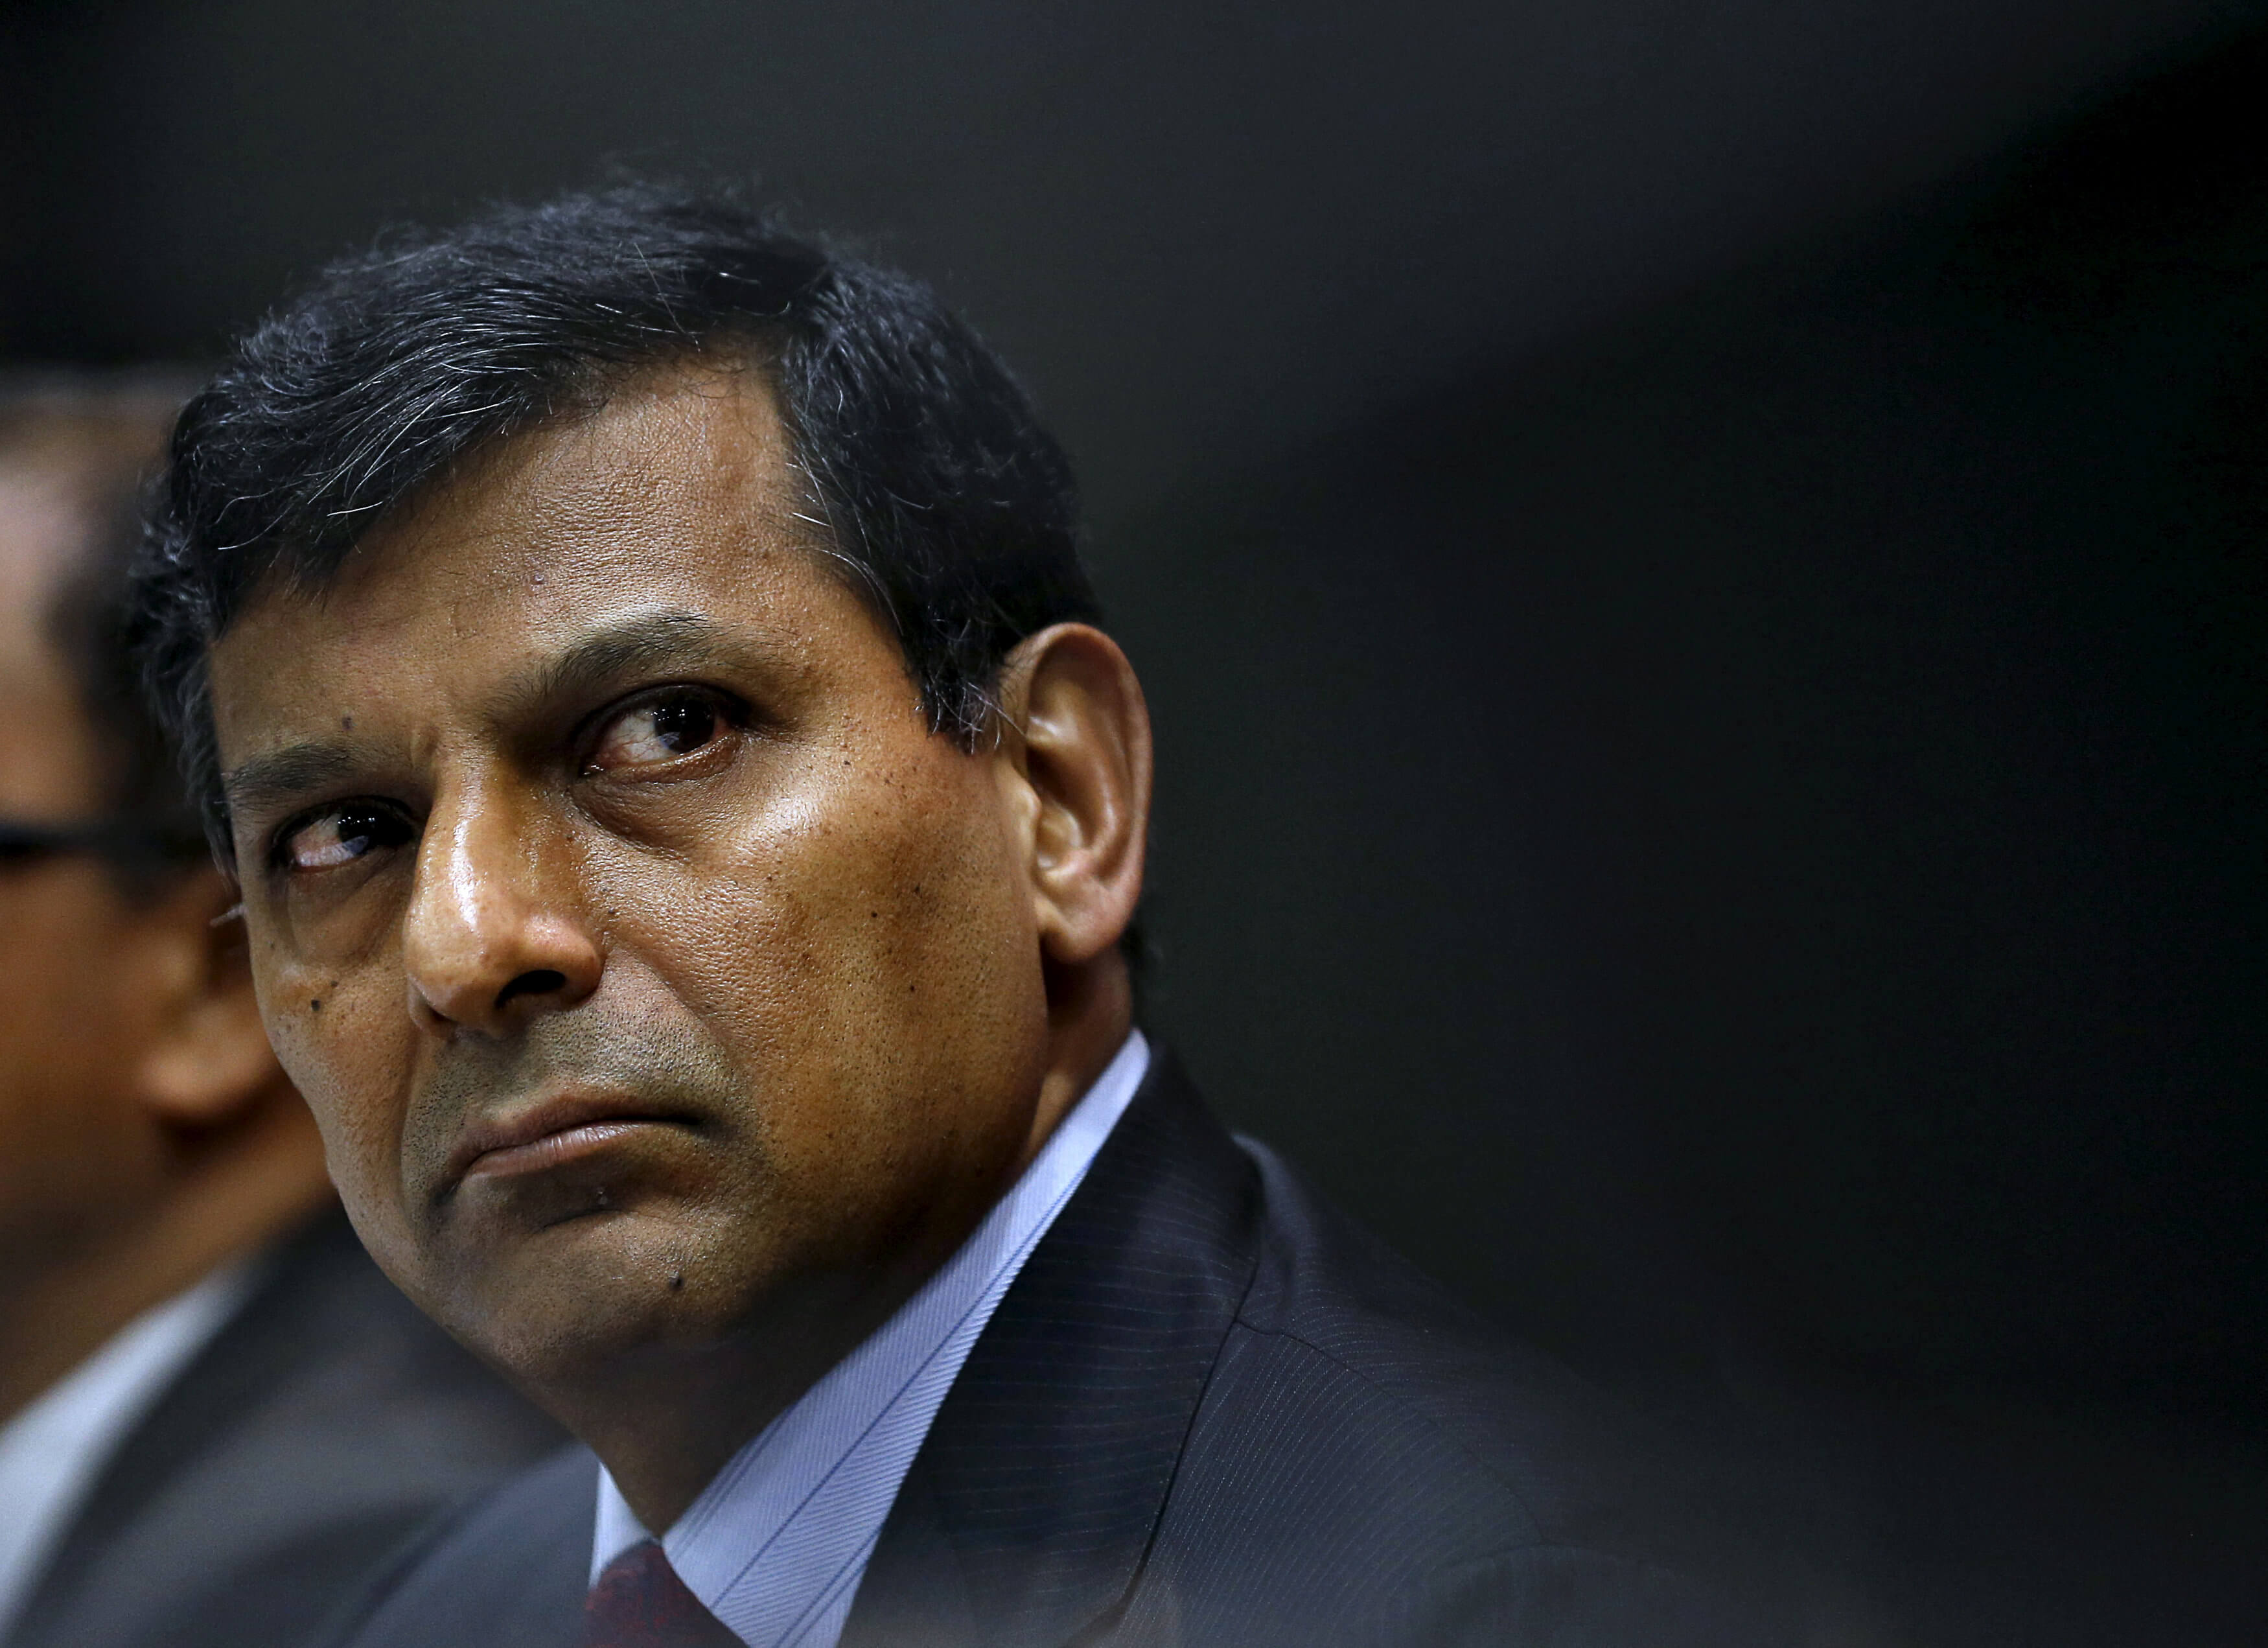 Reserve Bank of India (RBI) Governor Raghuram Rajan attends a news conference after their bimonthly monetary policy review in Mumbai, India, April 5, 2016. REUTERS/Danish Siddiqui/File Photo